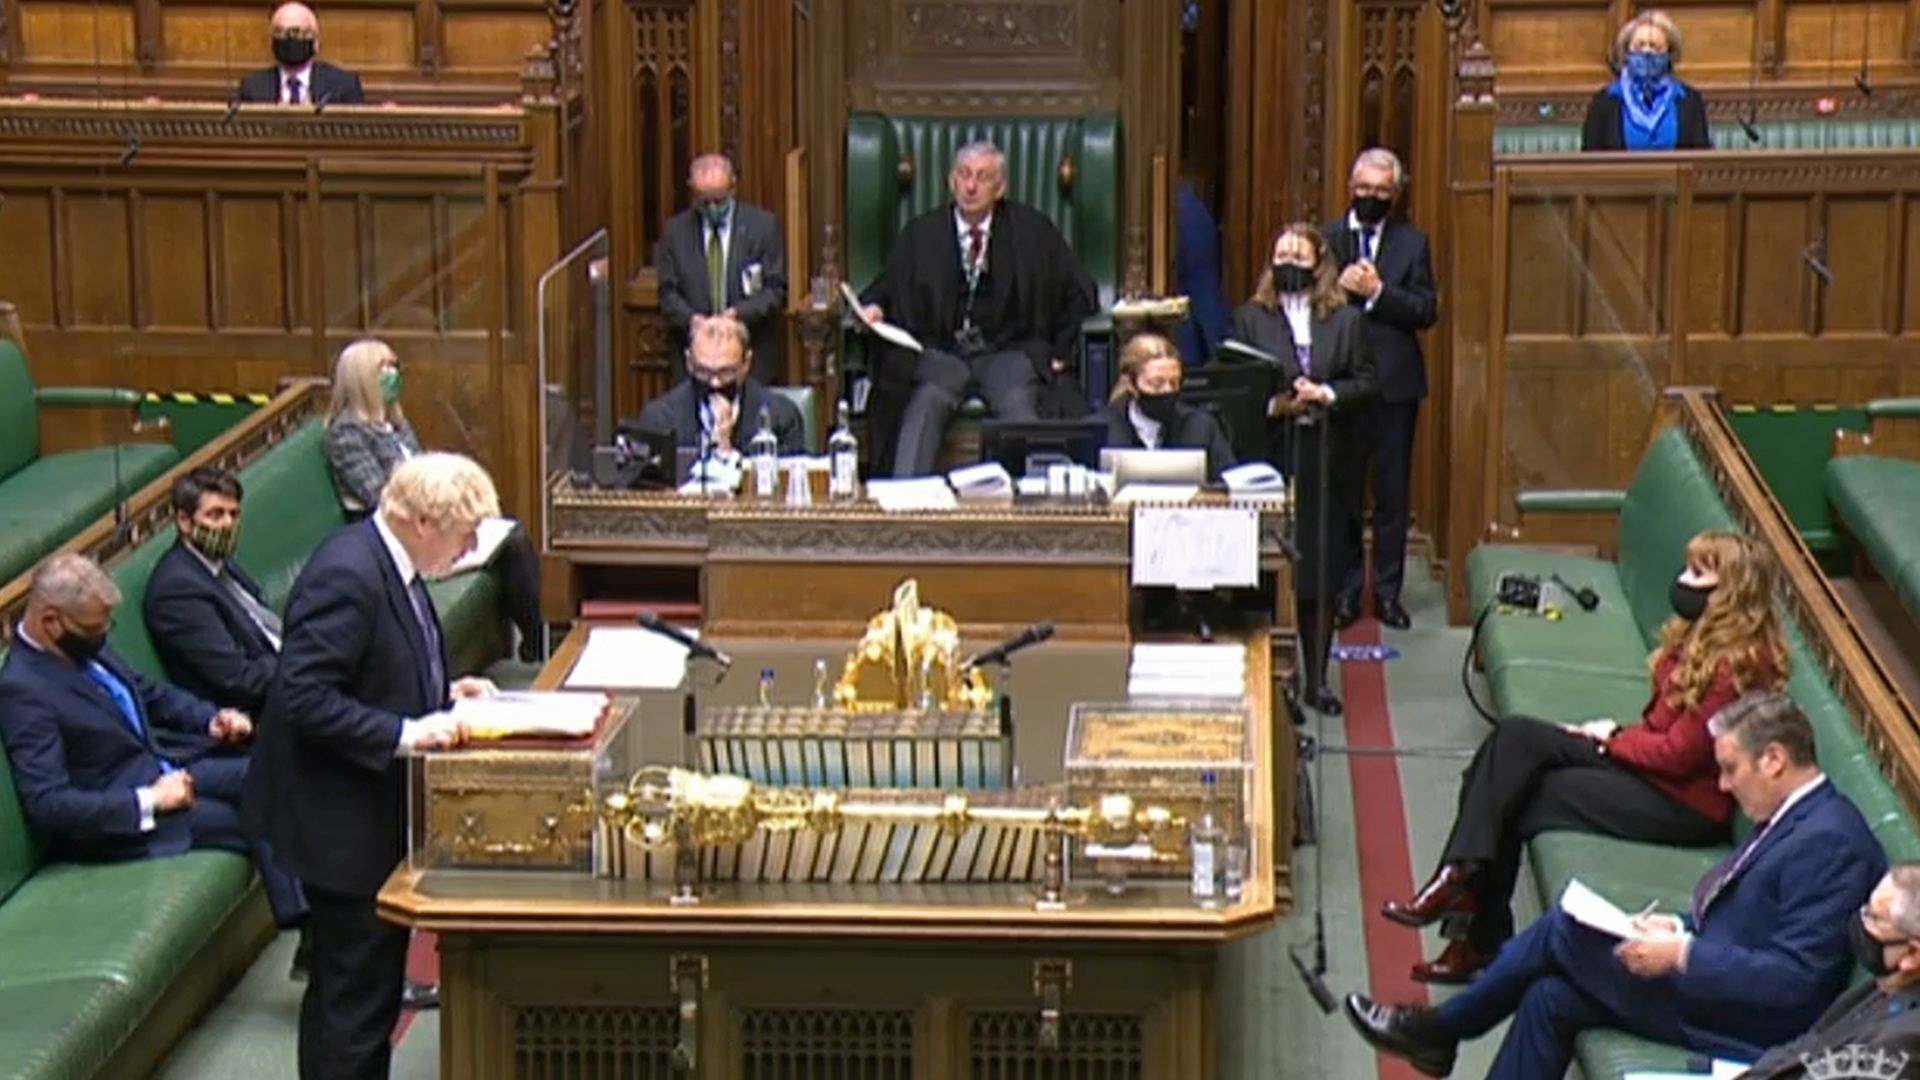 Prime Minister Boris Johnson speaks during Prime Minister's Questions - Credit: PA